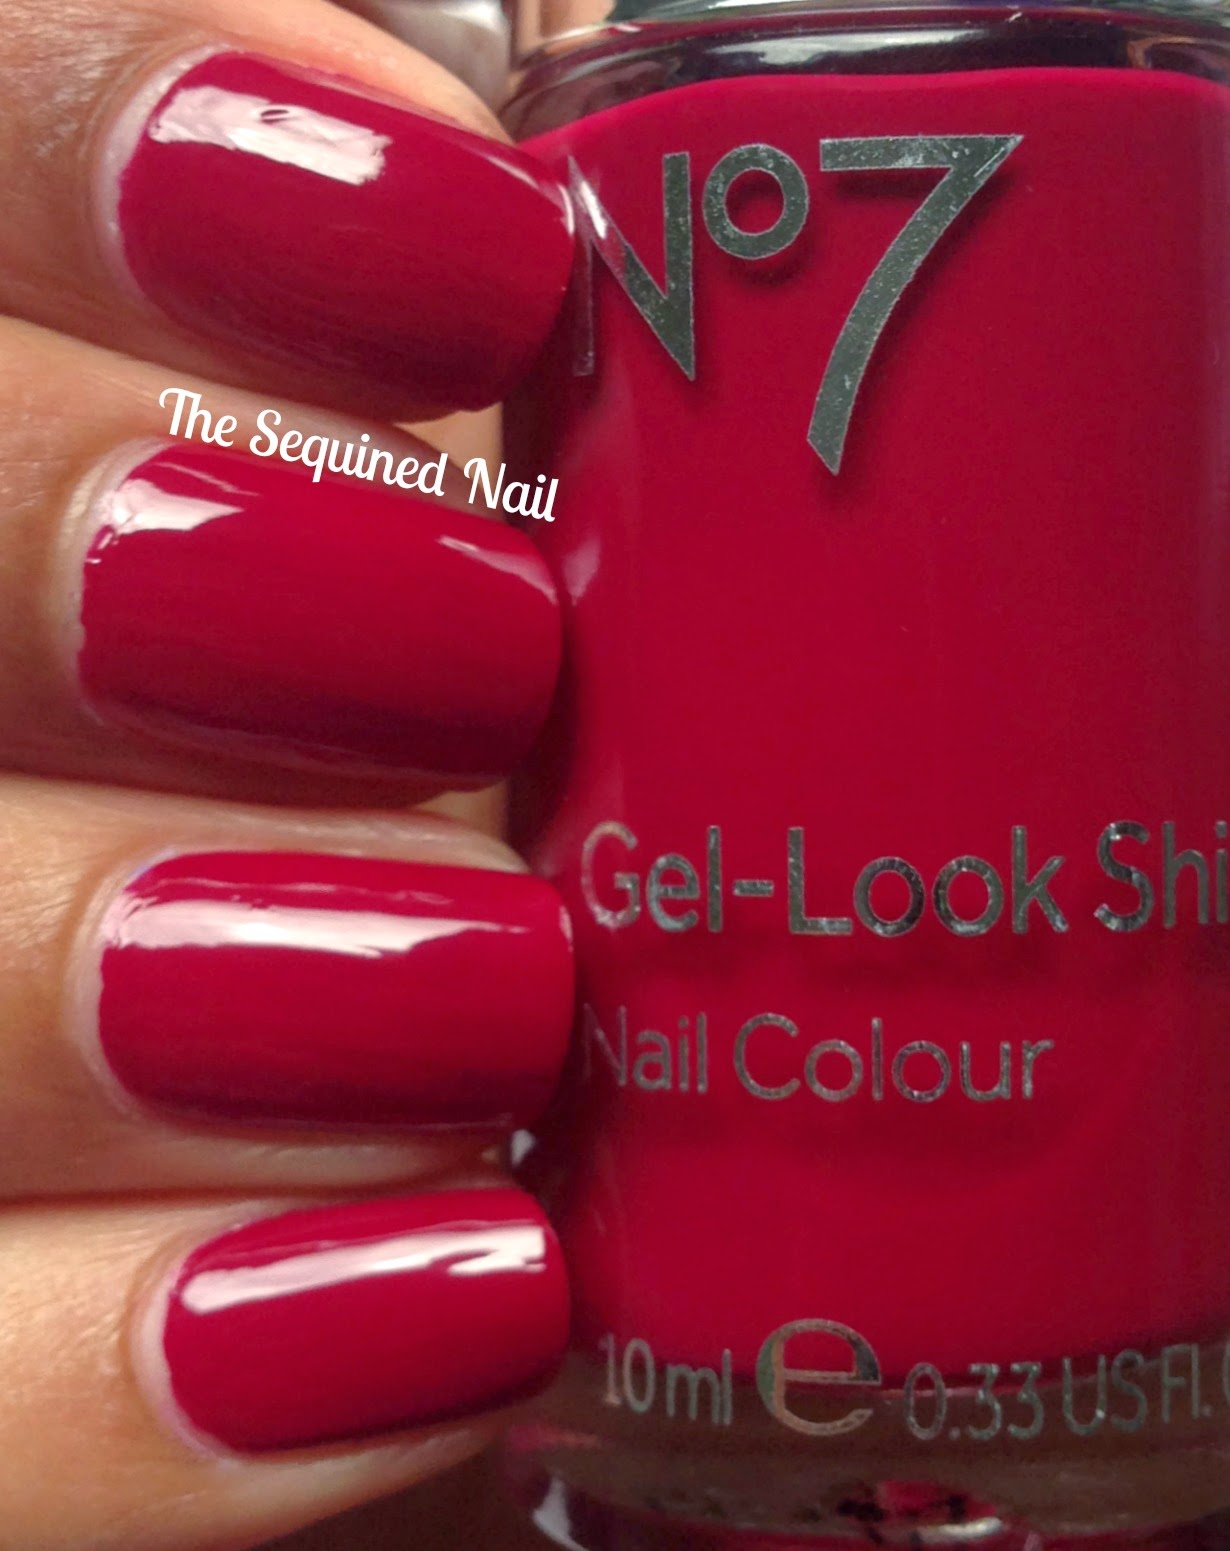 The Sequined Nail: No7 Gel-Look Shine Deep Wine swatch